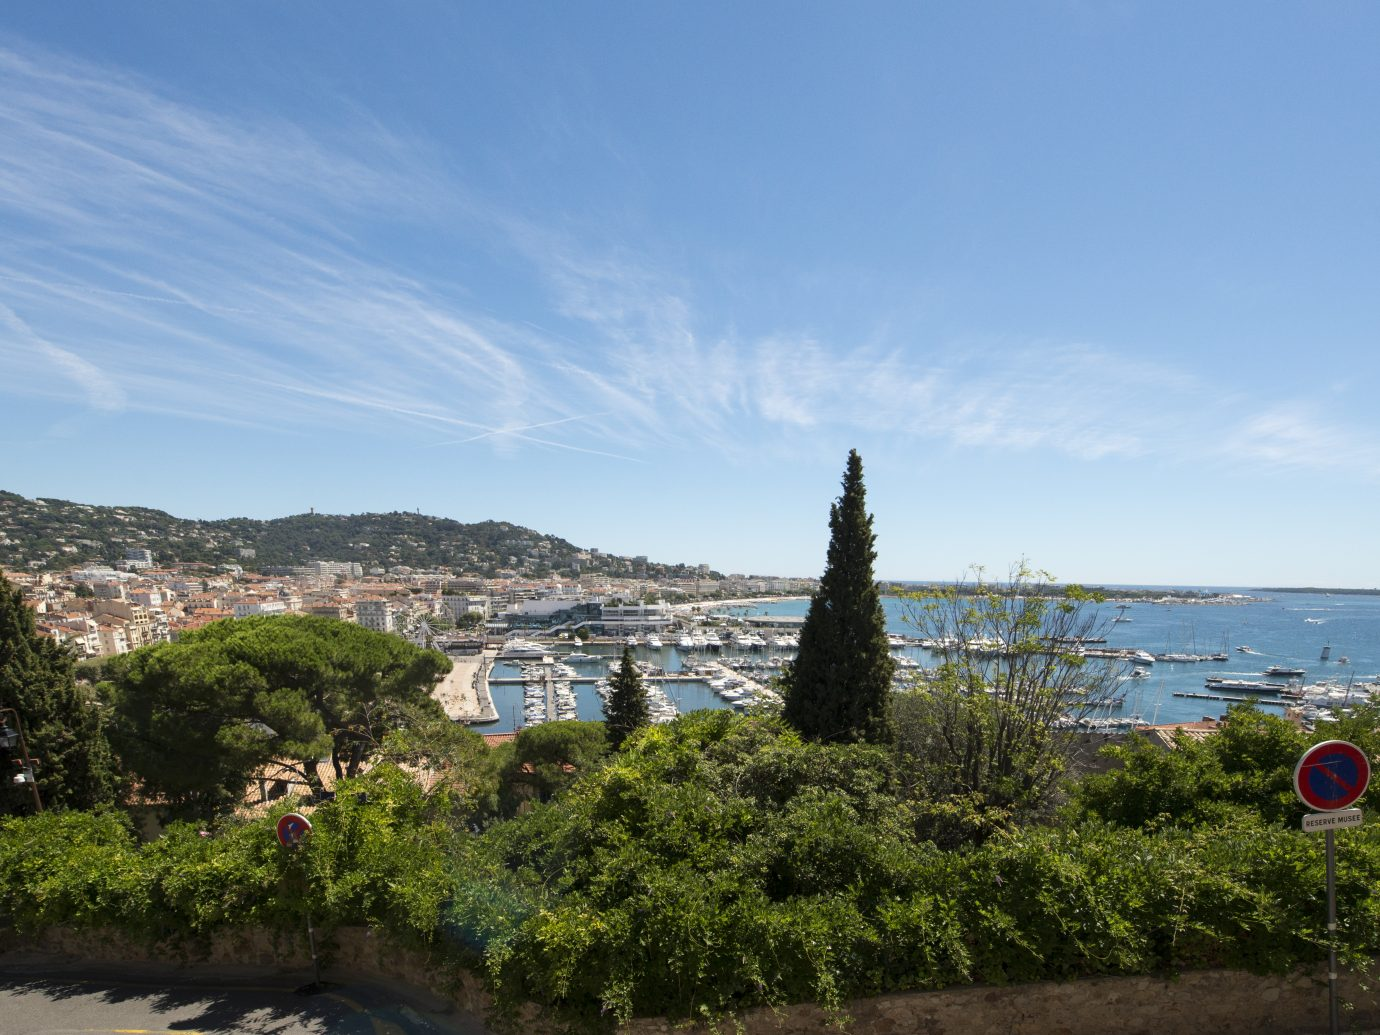 Overview of Cannes, France seen from the Castrum Museum